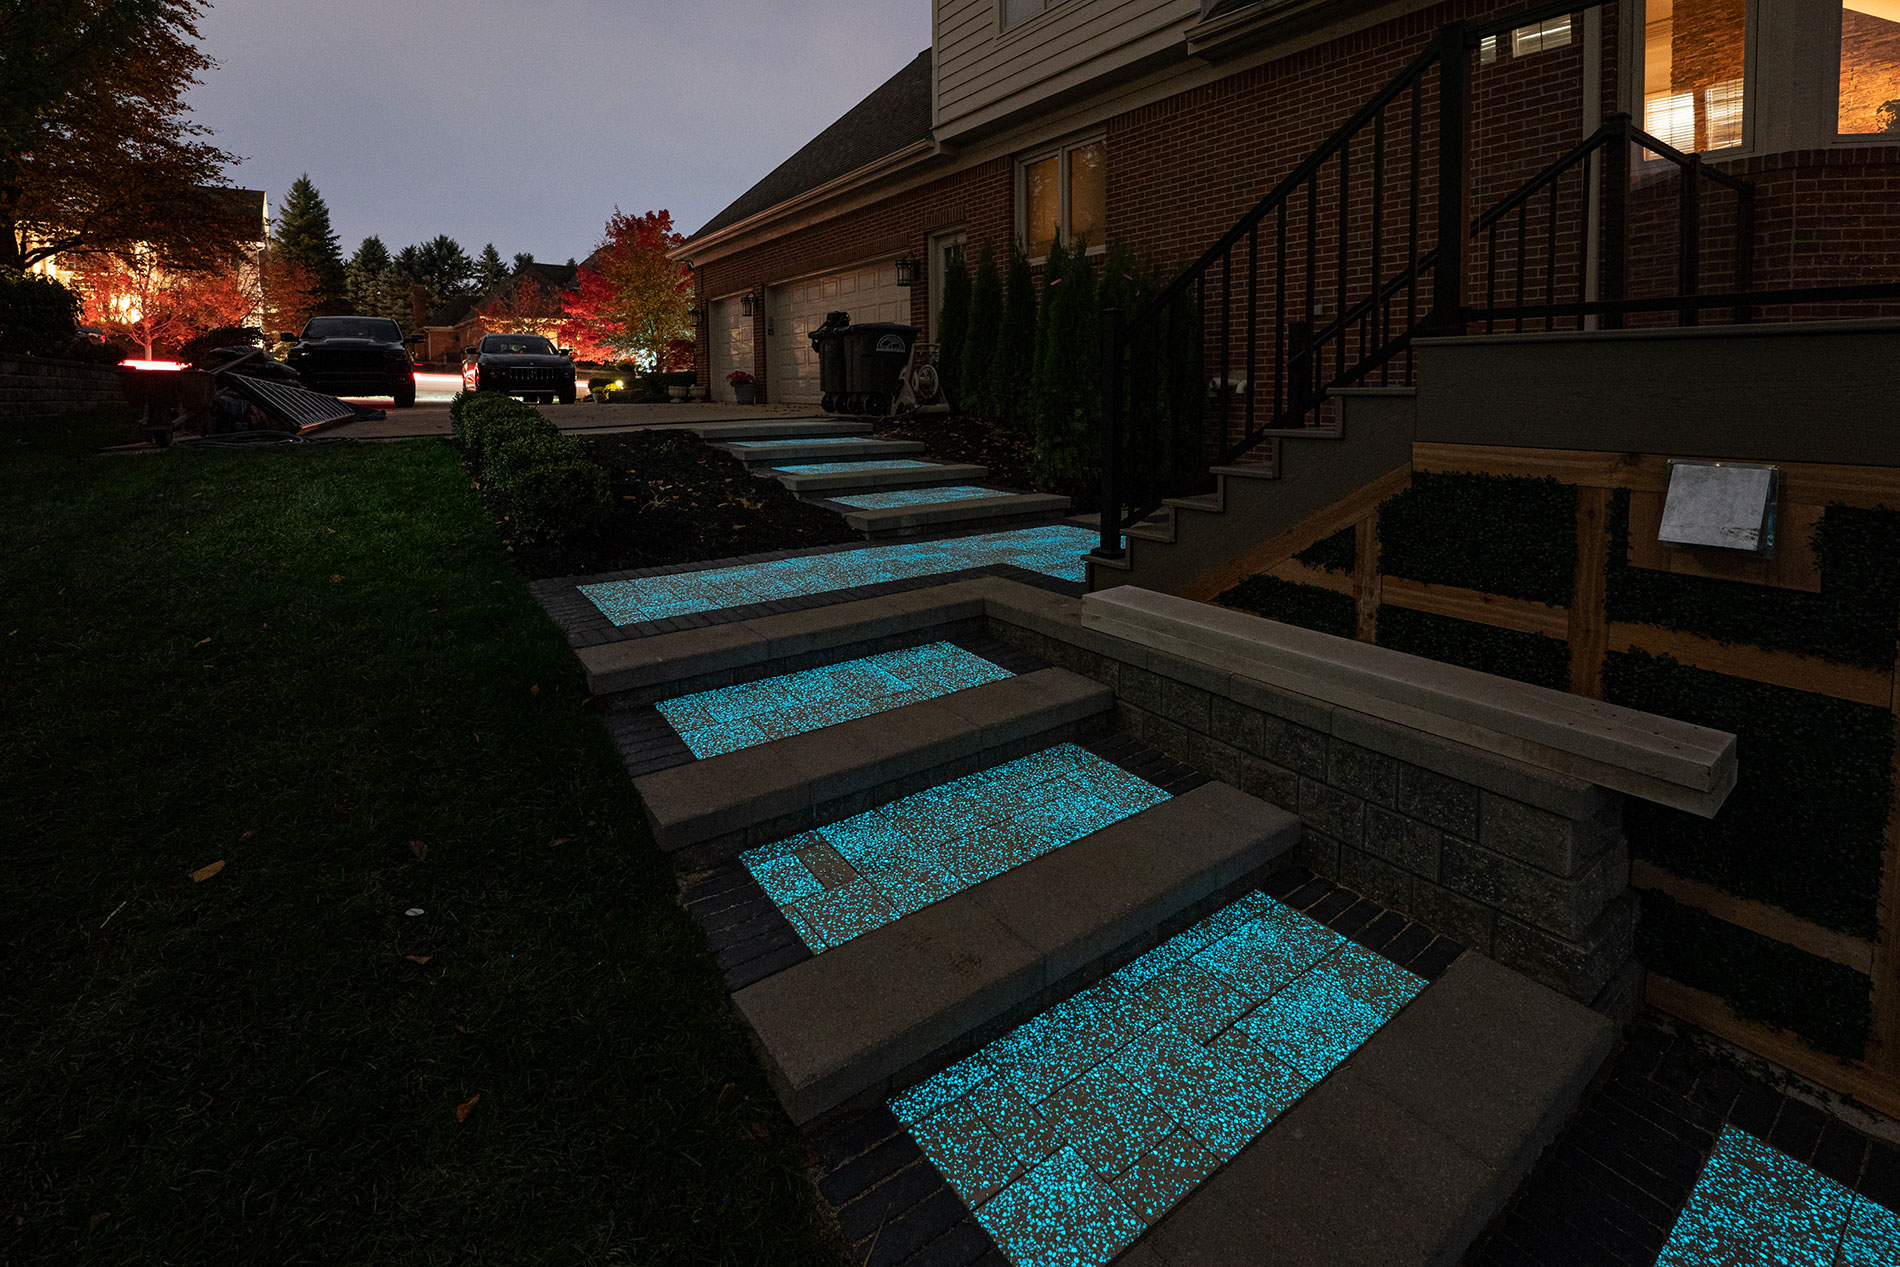 Solar Pavers installed on stairs